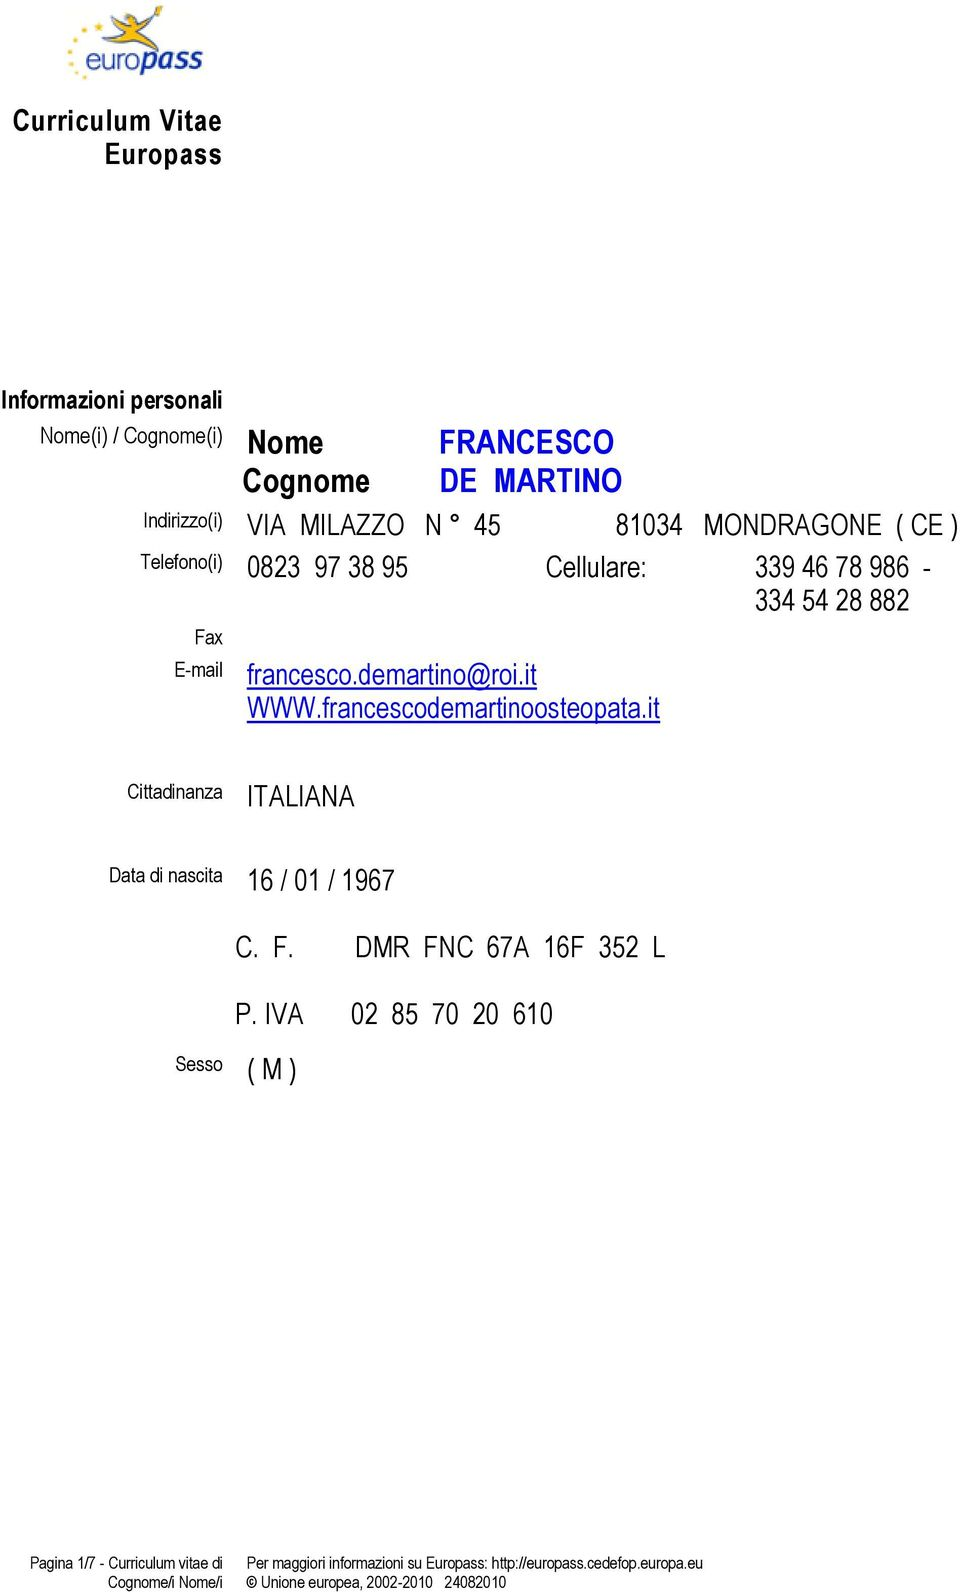 54 28 882 Fax E-mail francesco.demartino@roi.it WWW.francescodemartinoosteopata.